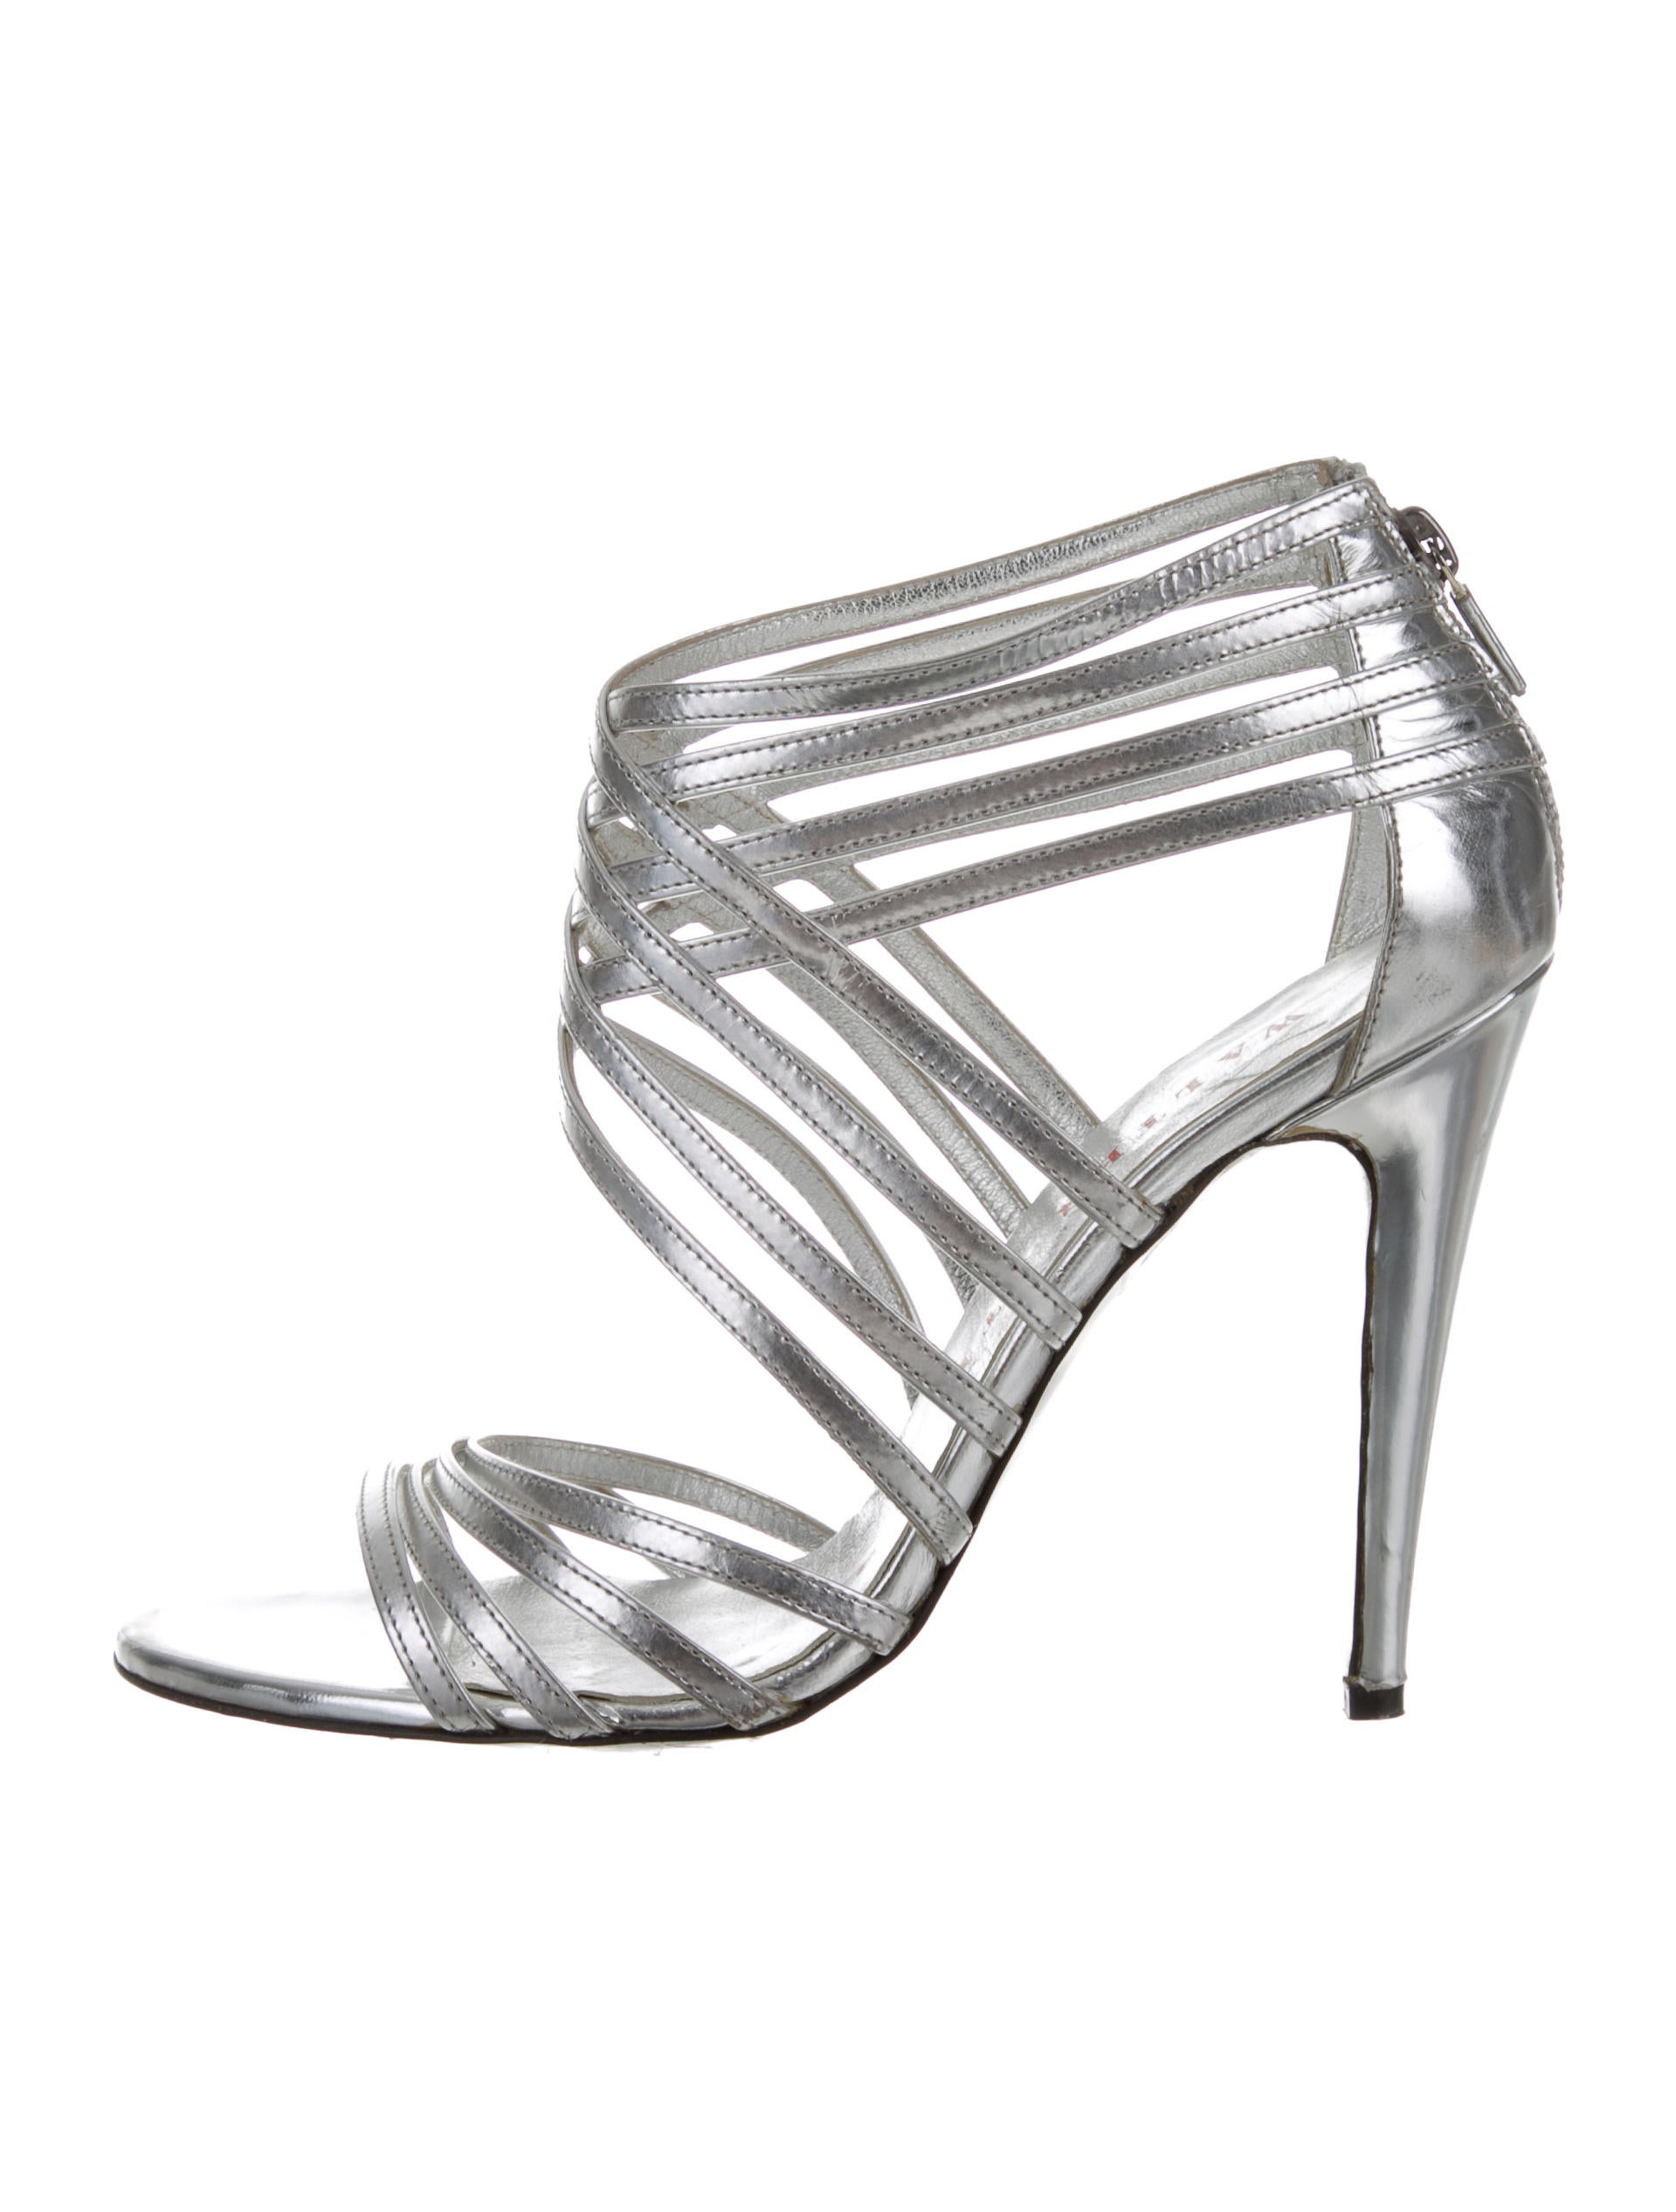 Walter Steiger Metallic Multistrap Sandals clearance best wholesale sale pre order free shipping pay with visa s2Q4biwbGl